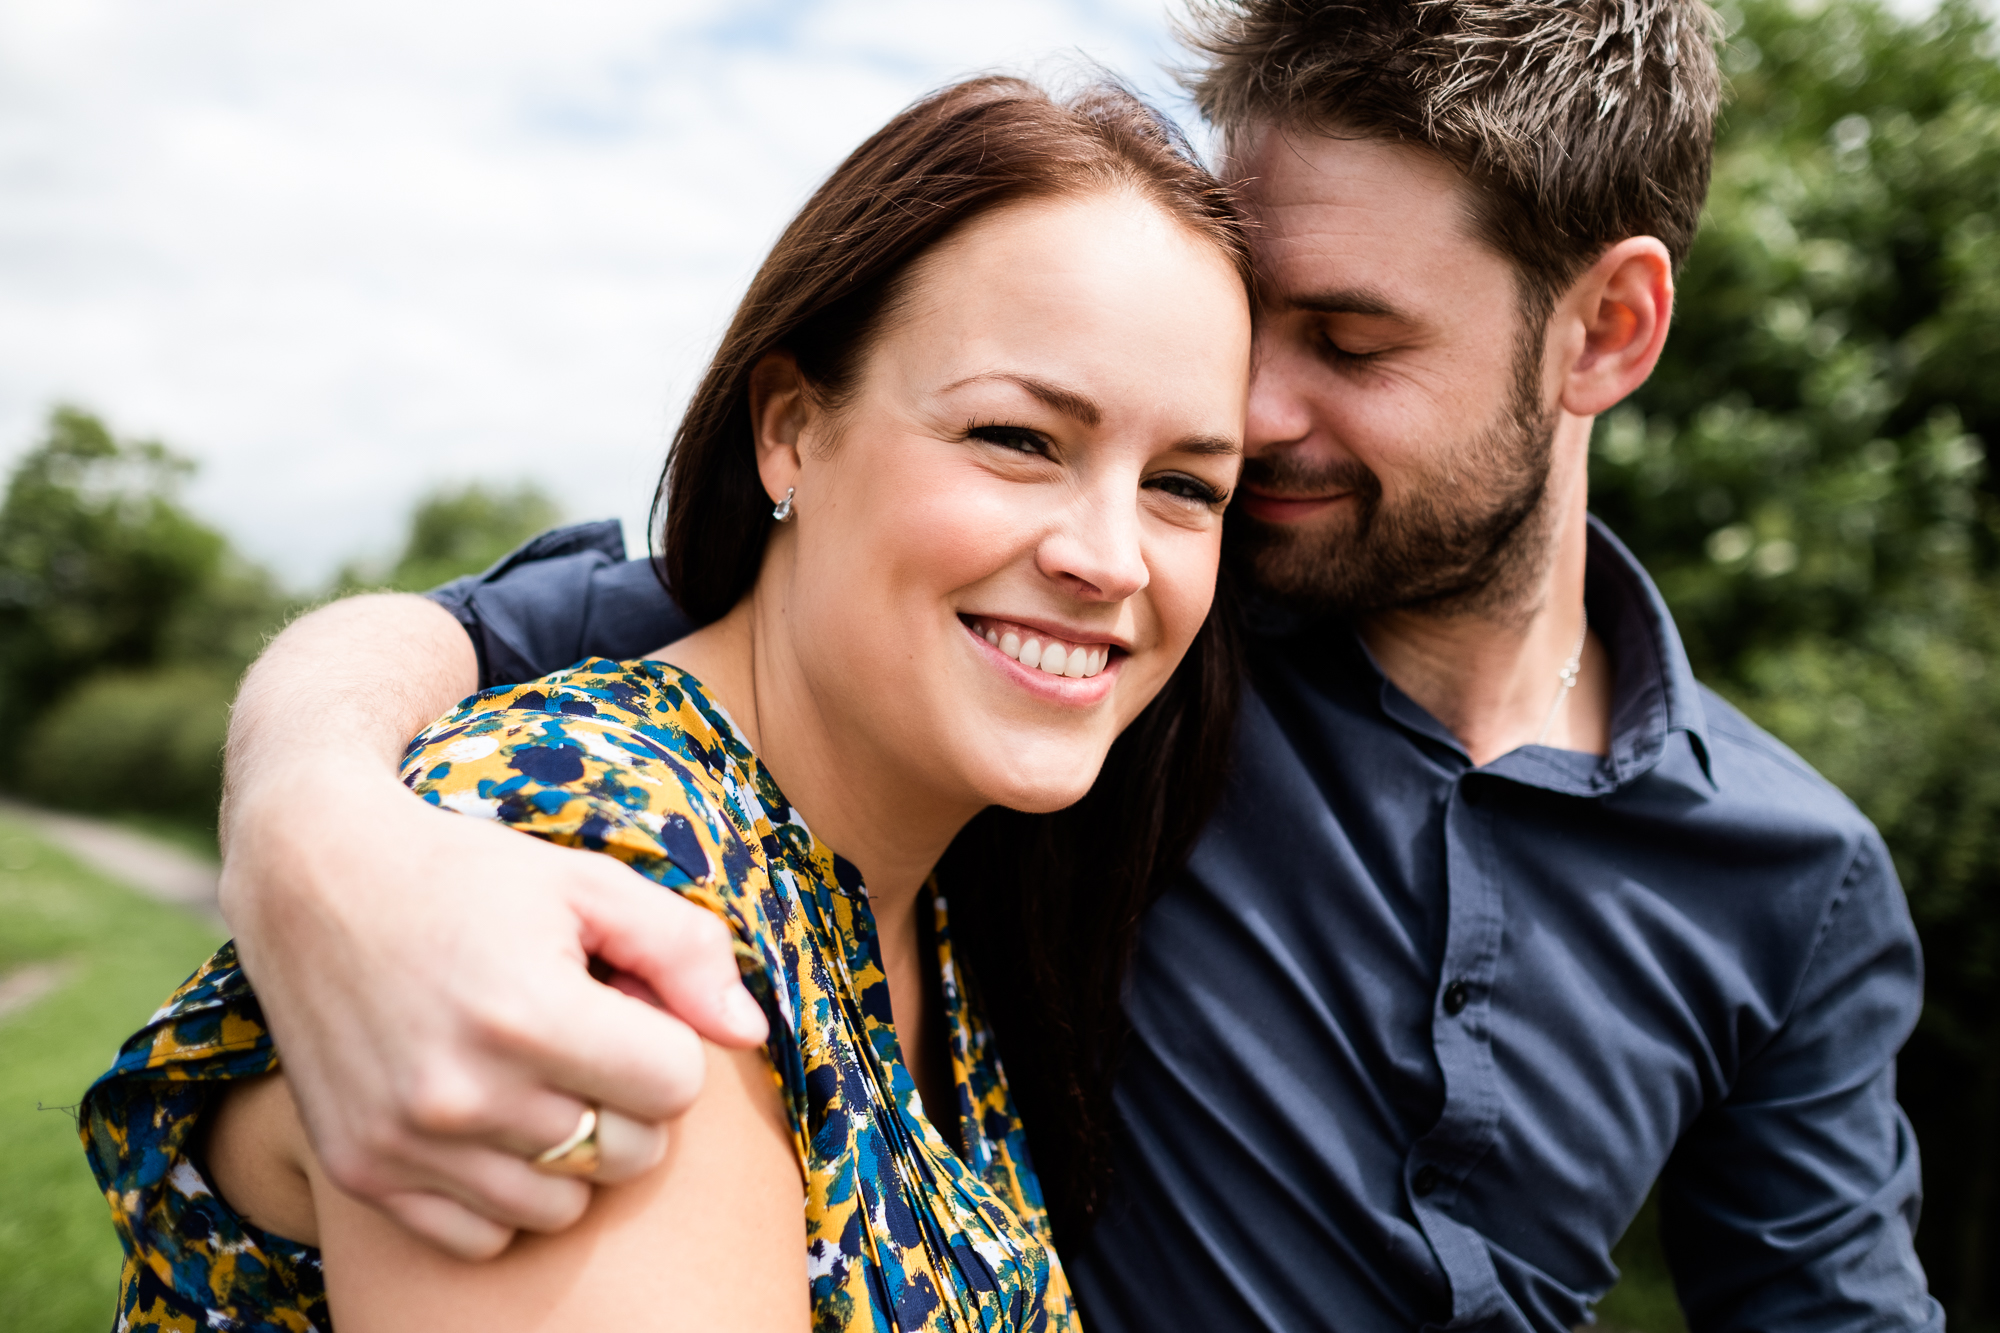 Pre-Wedding Session Engagement Photos Couple Shoot English countryside Canal - Jenny Harper Photography-11.jpg